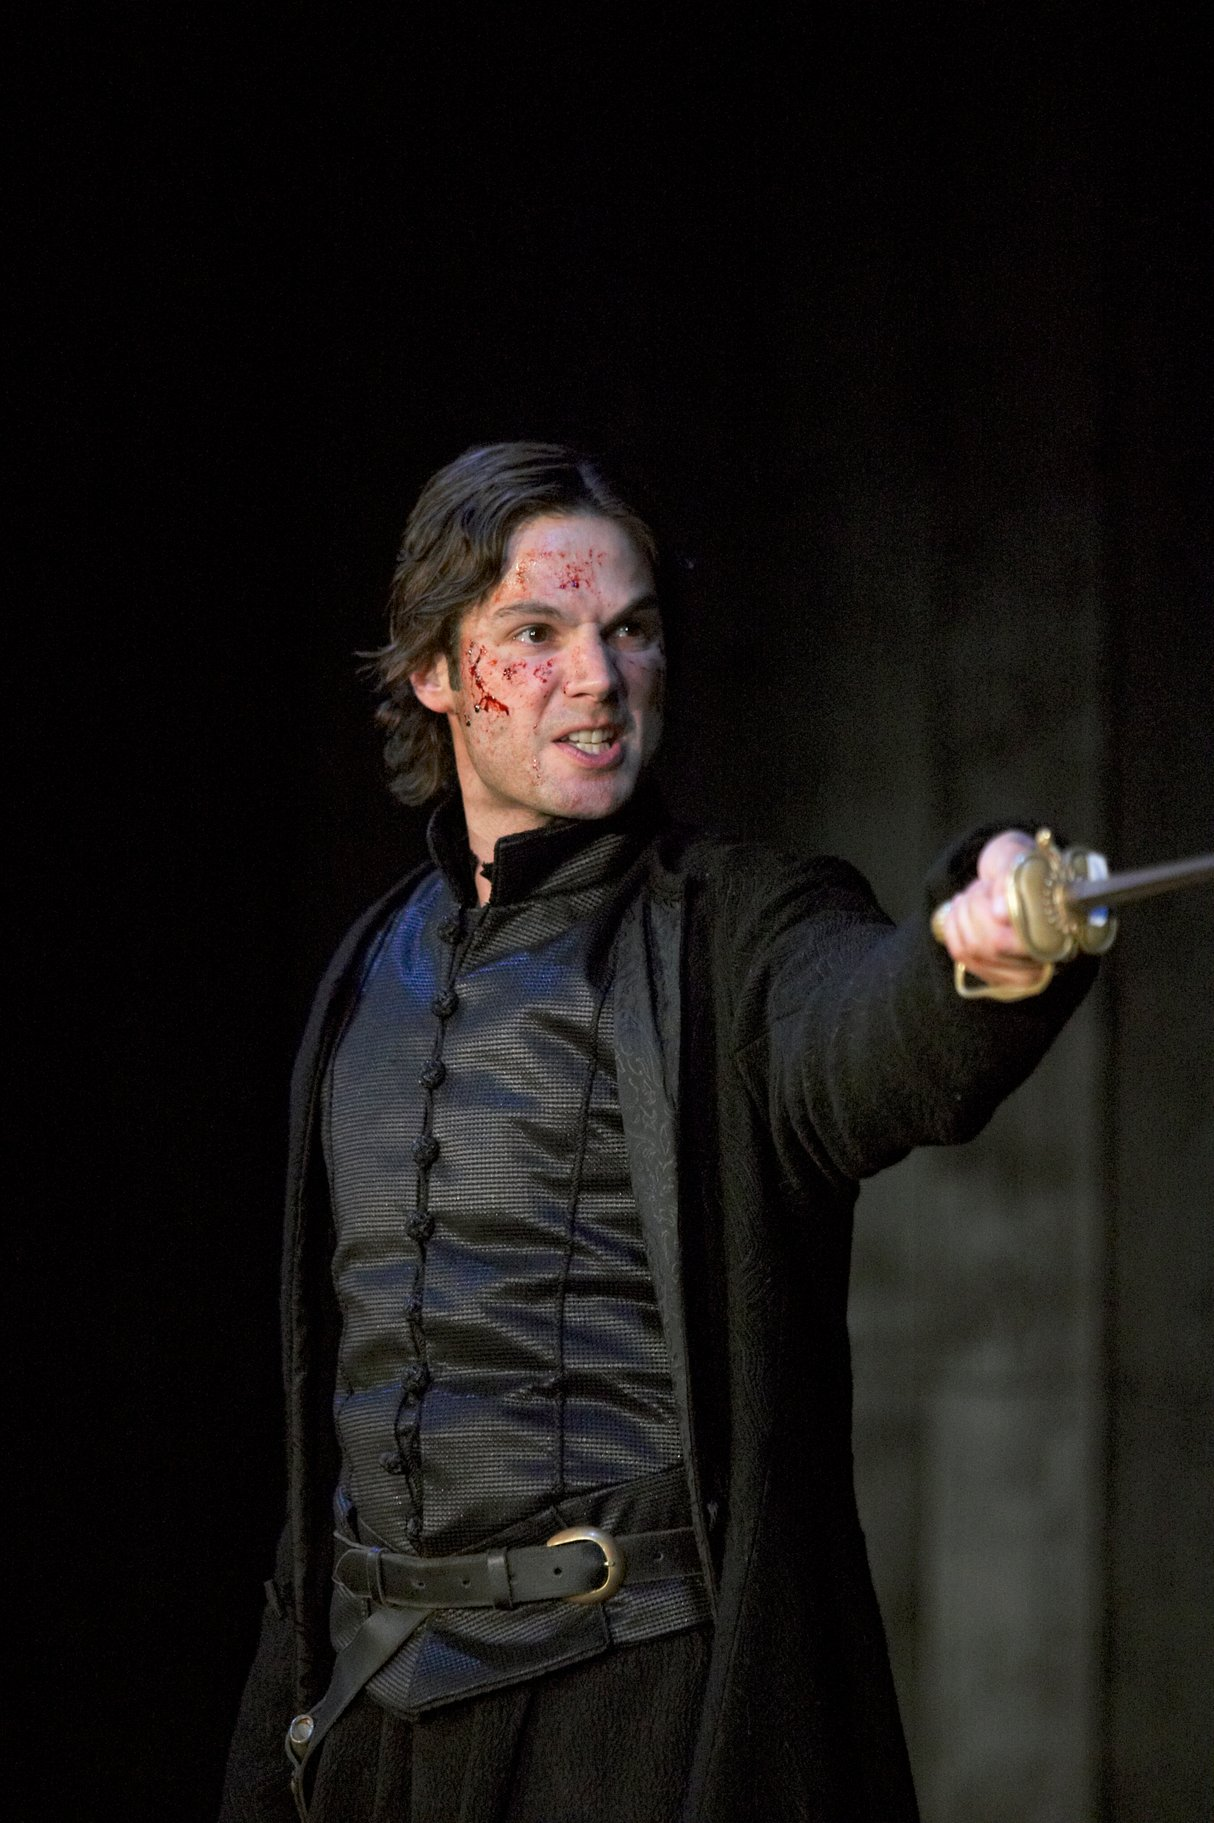 Laertes holding a sword